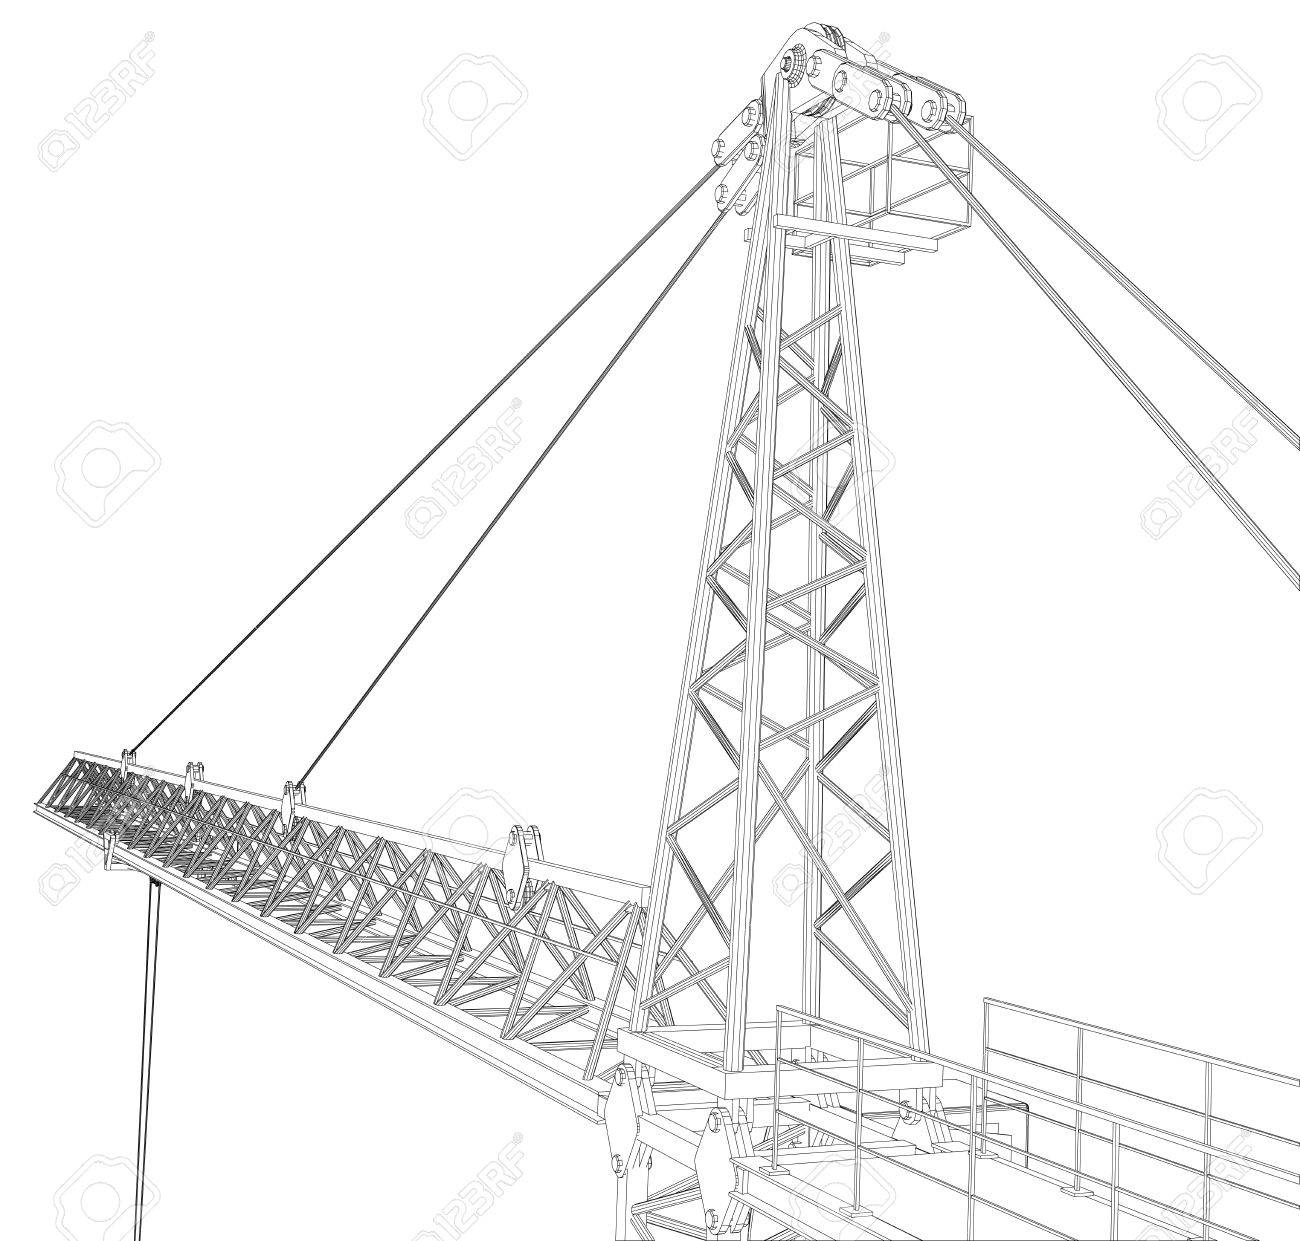 1300x1241 Tower Construction Crane. Detailed Vector Illustration Isolated